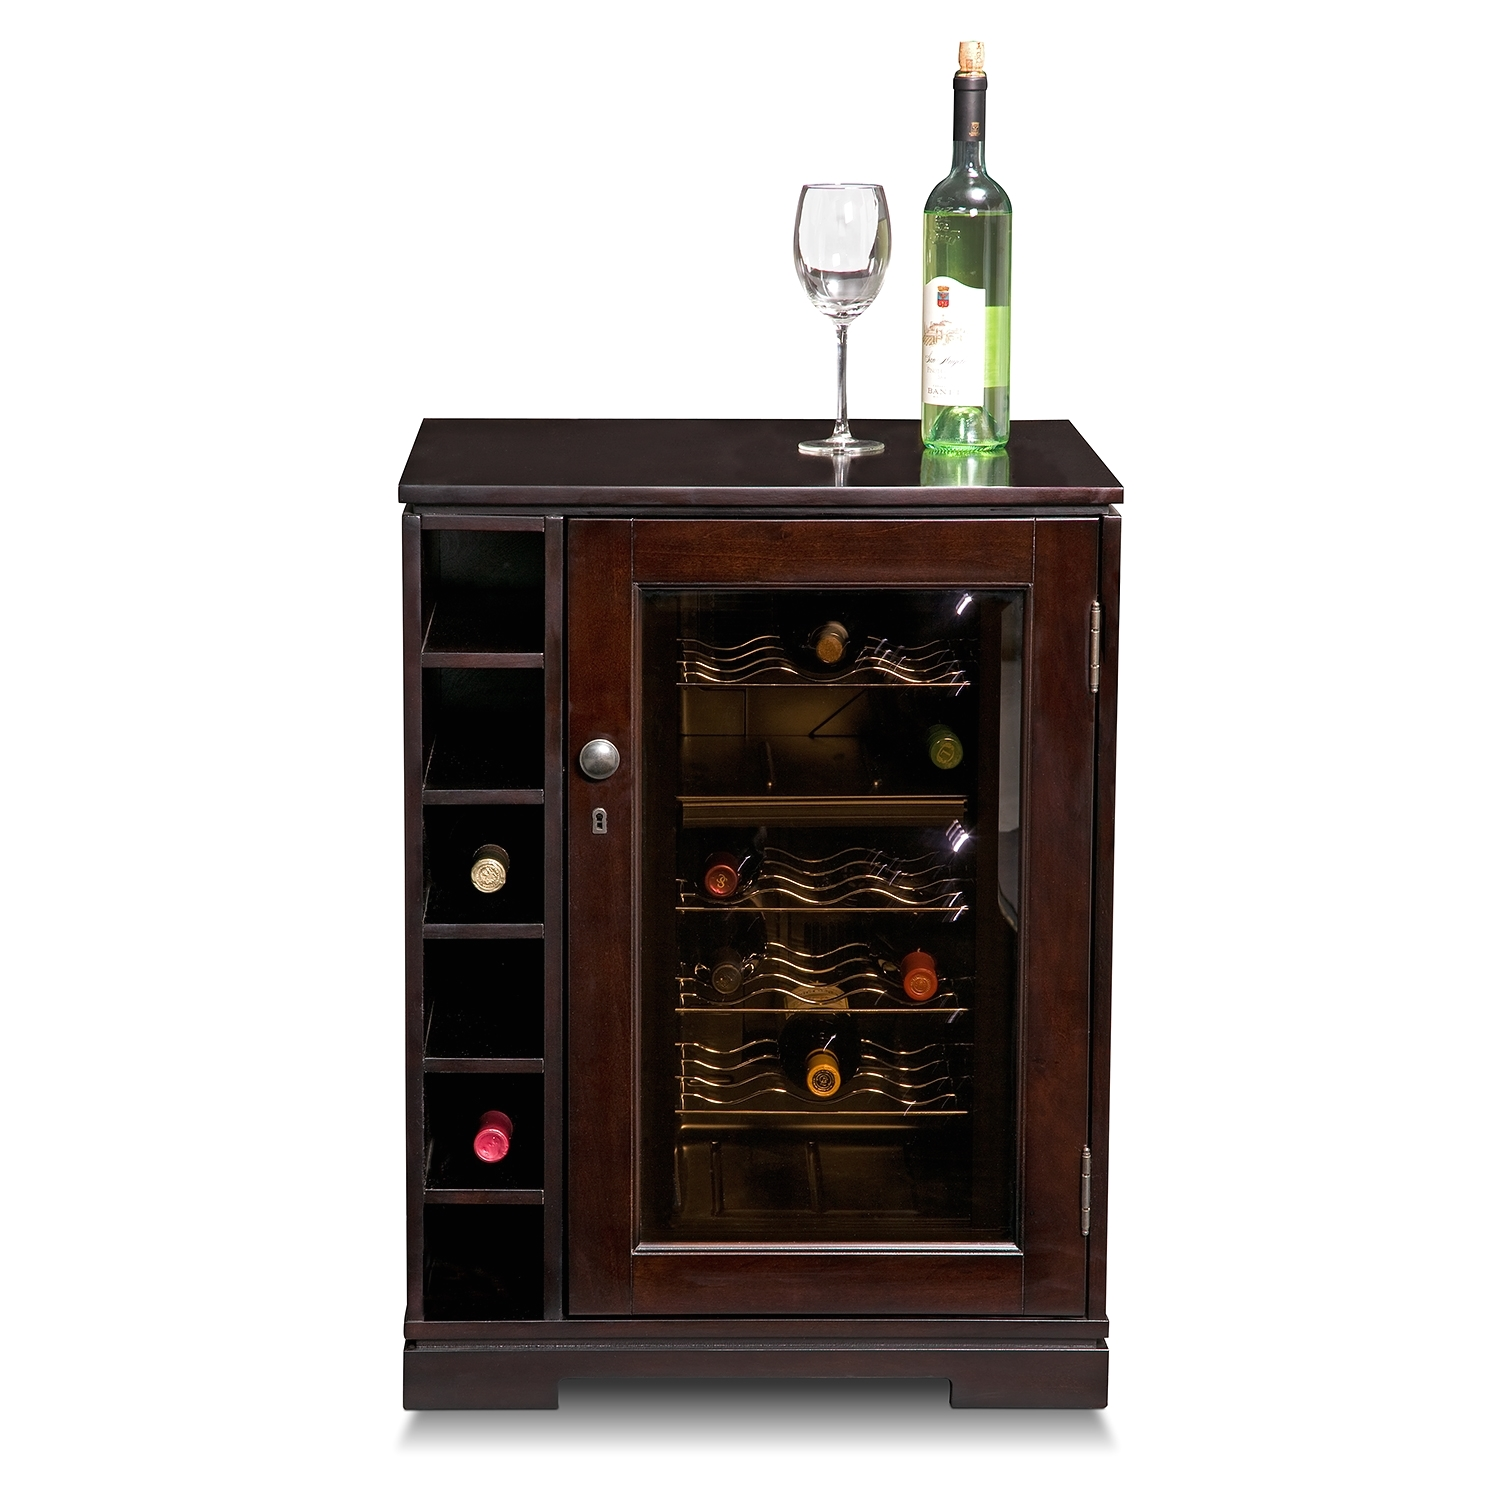 full size of cabinet ideas wine cooler cabinet best small wine fridge wine cooler flavors